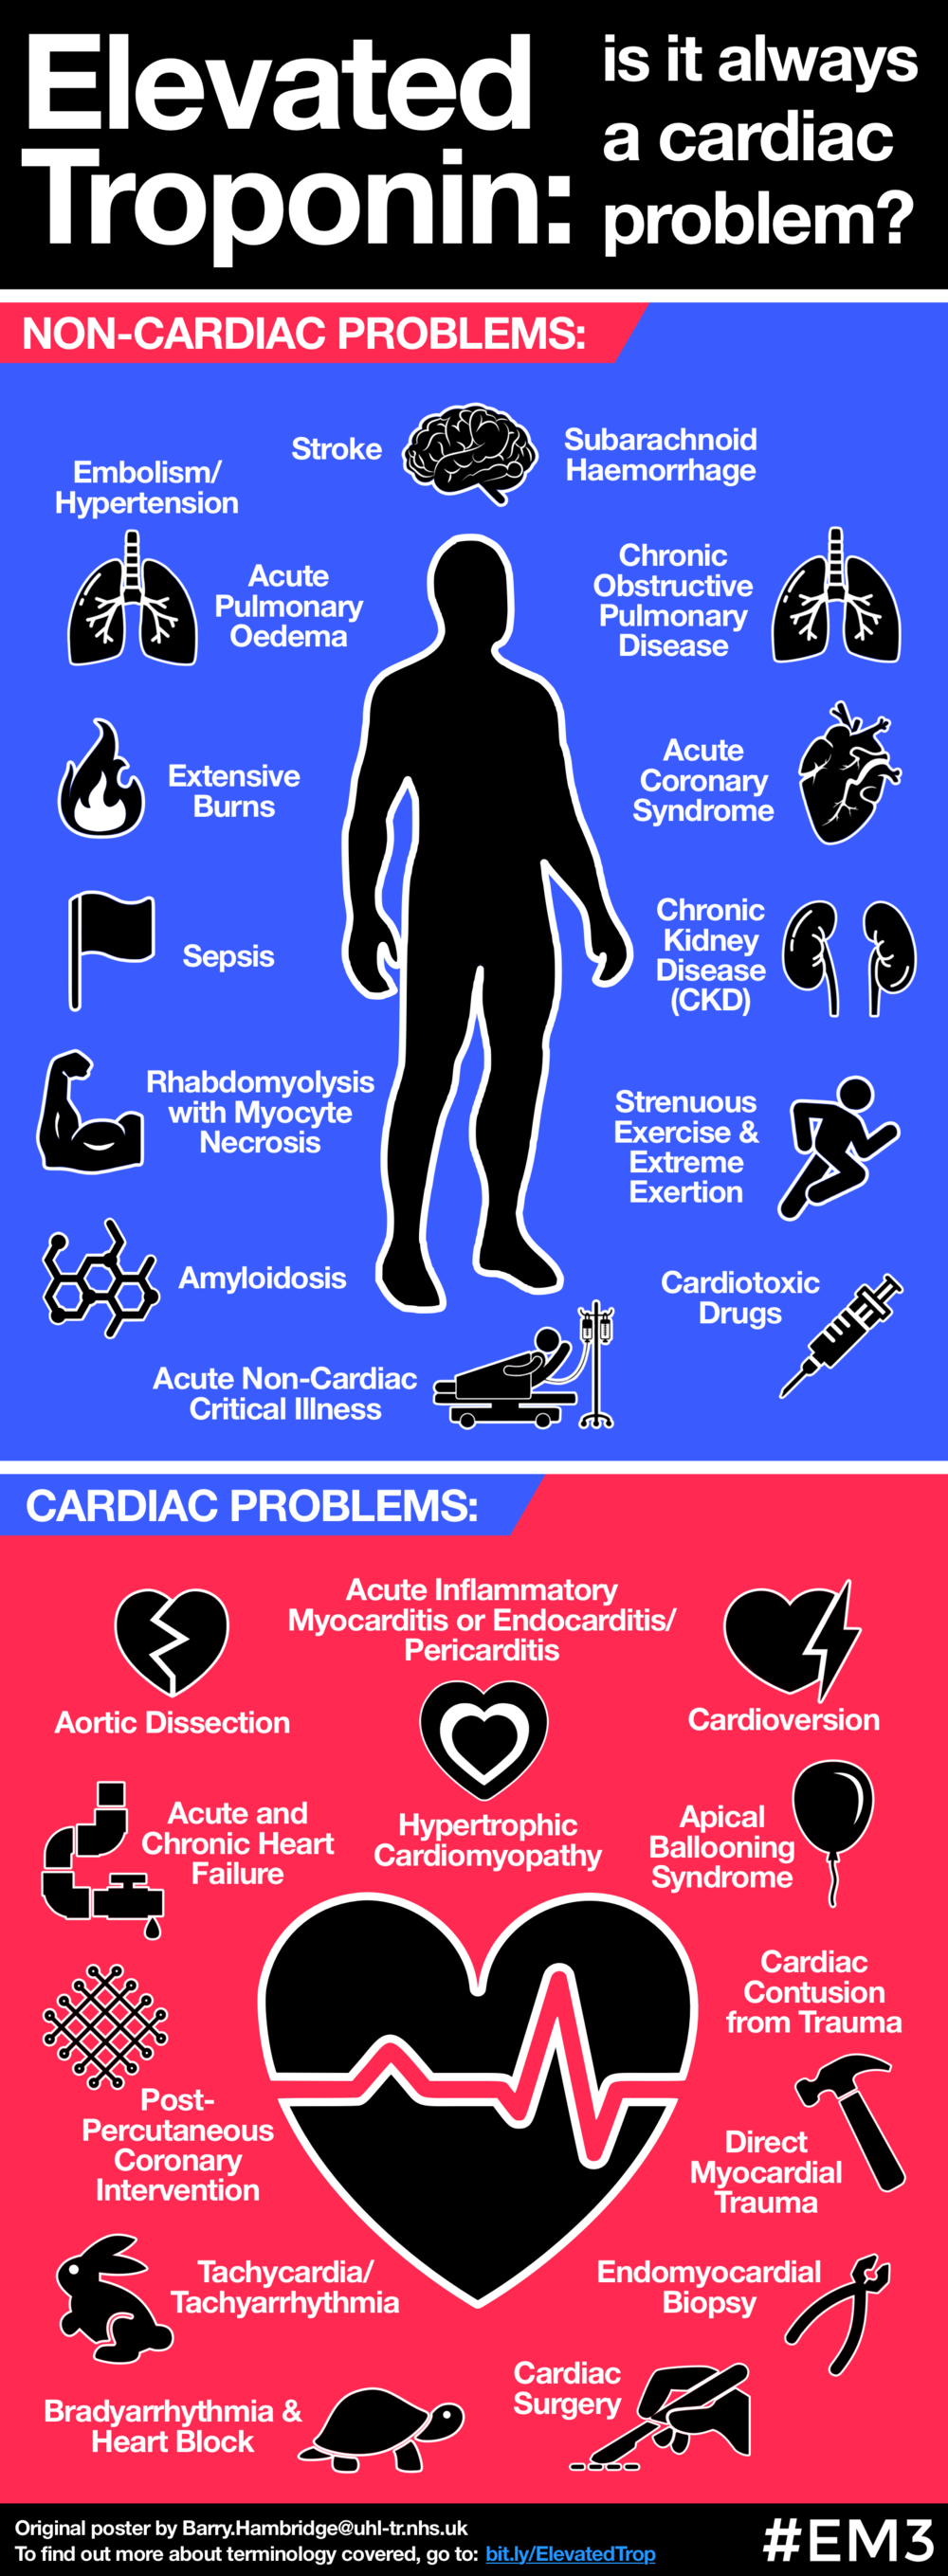 Elevated Troponin (infographic).png